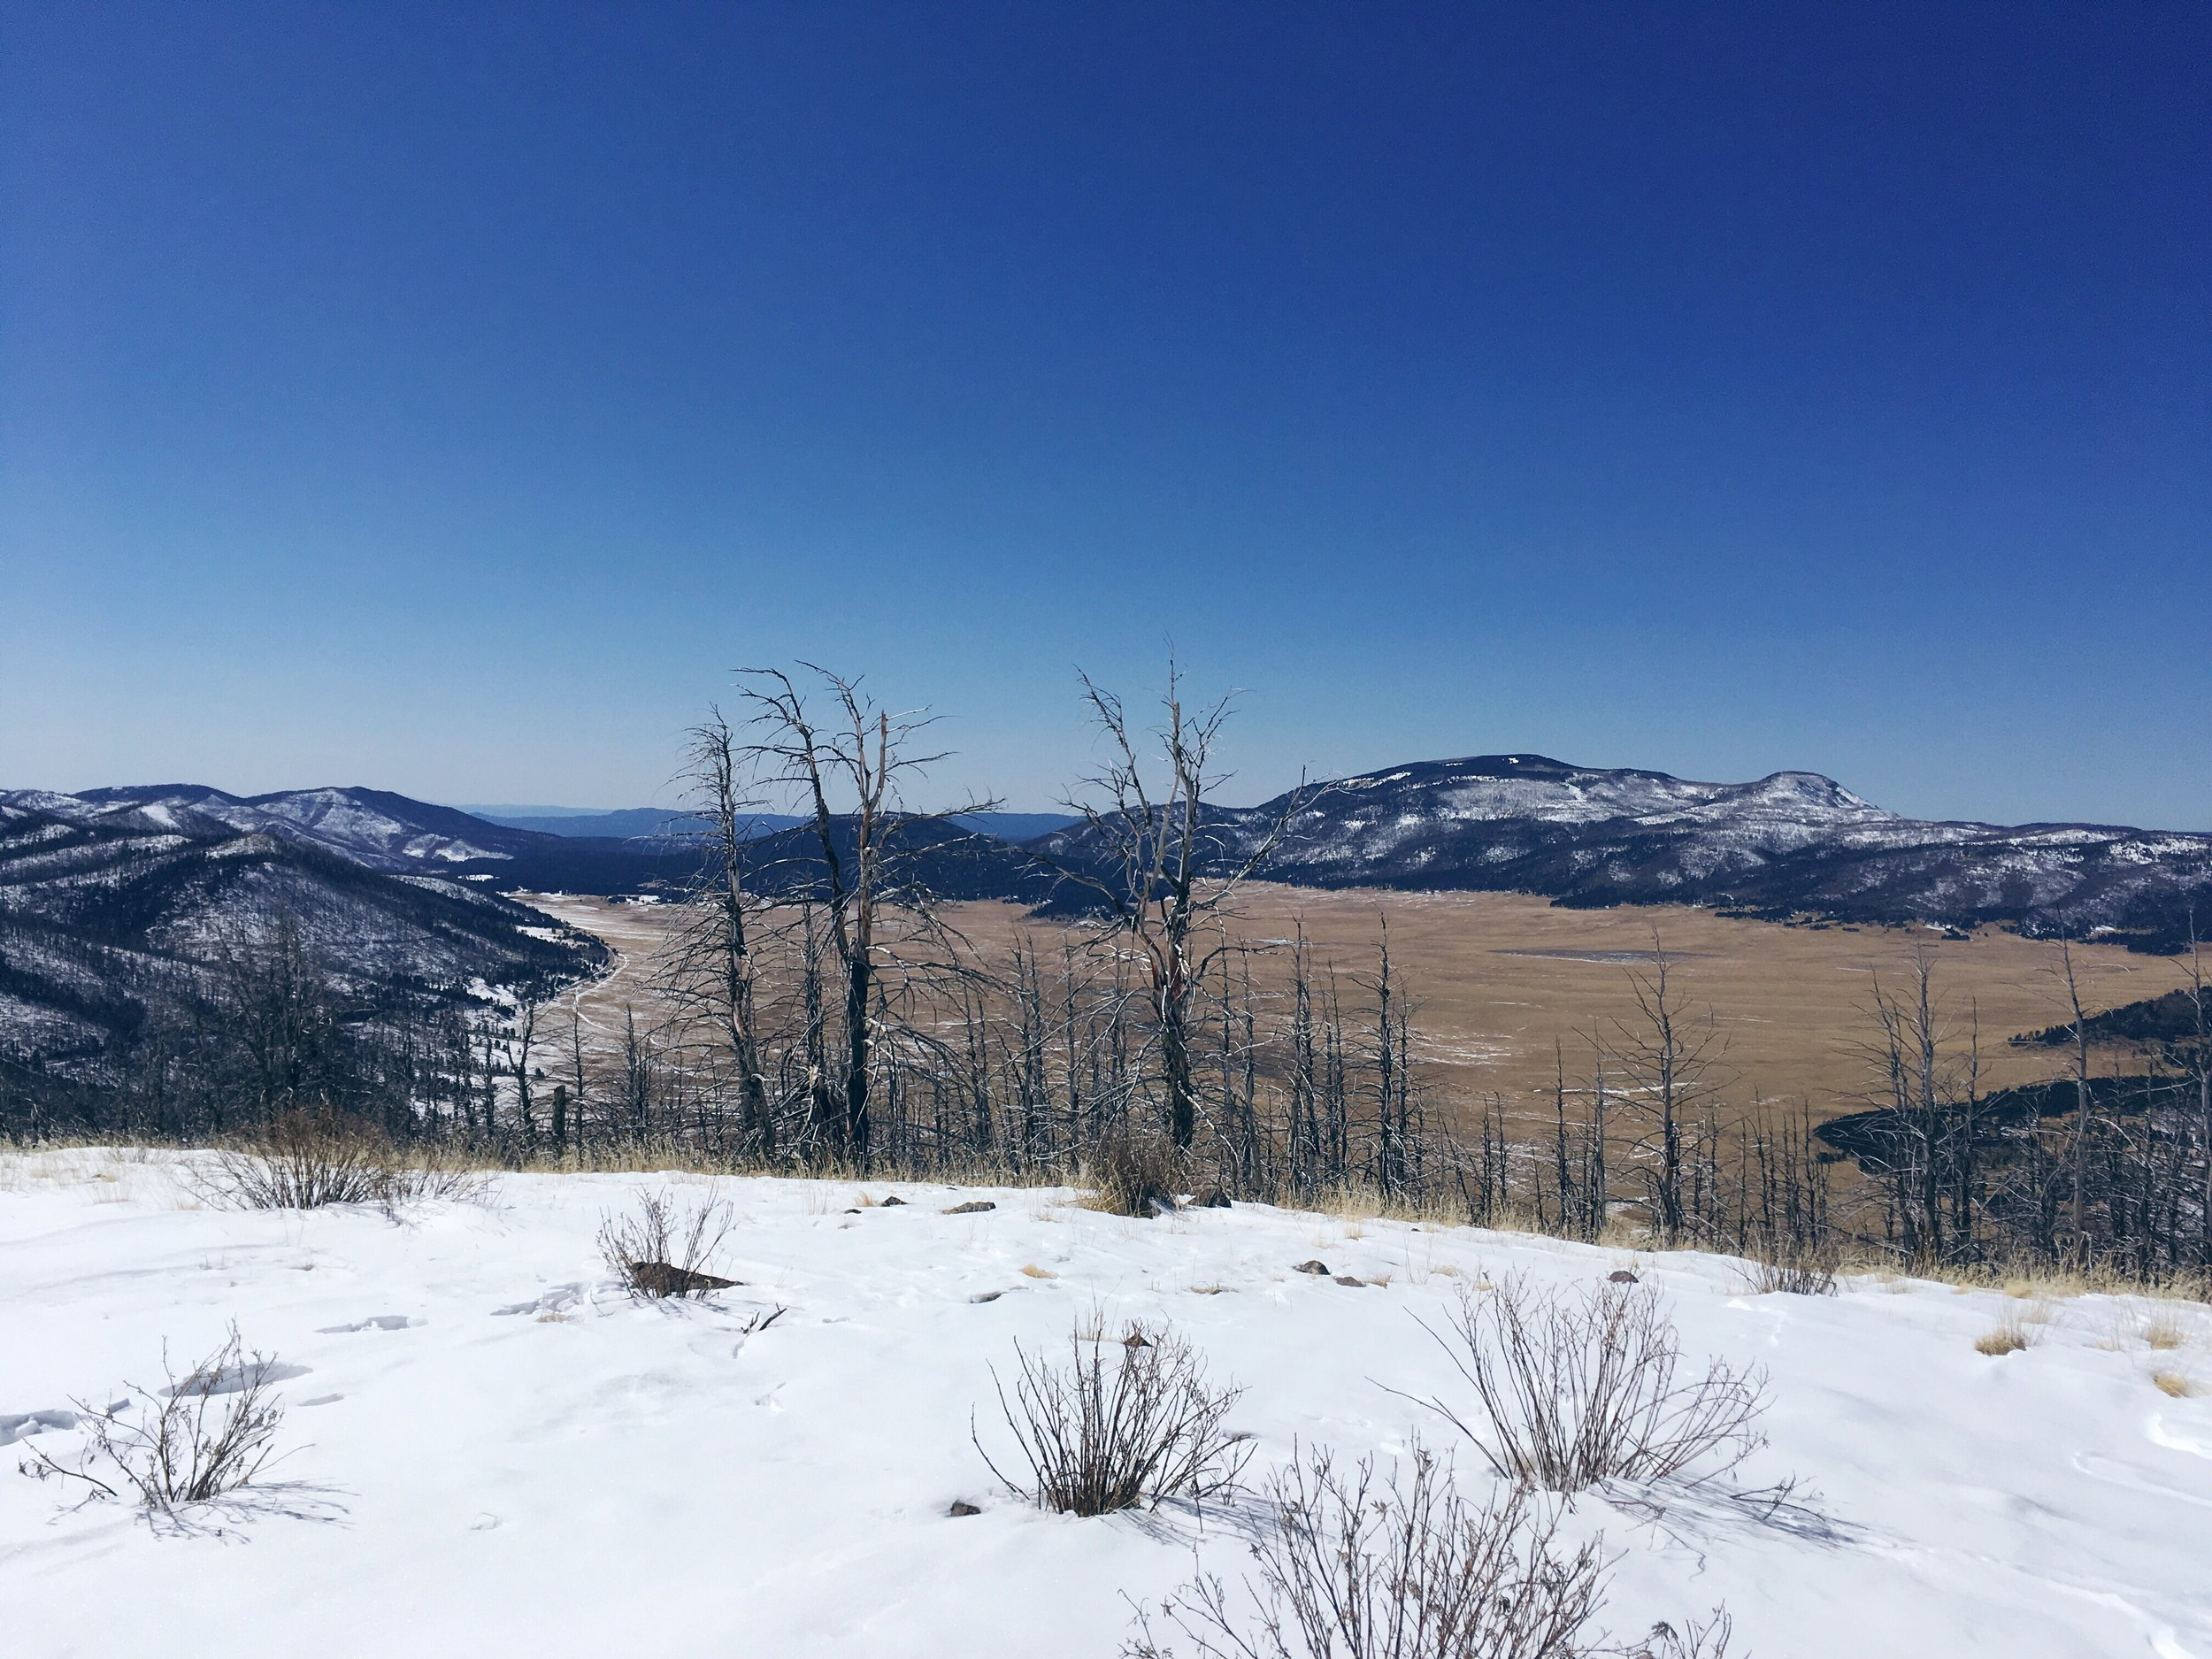 The view looking down on Valles Caldera in late winter. Valles Caldera is one of my favorite places here.